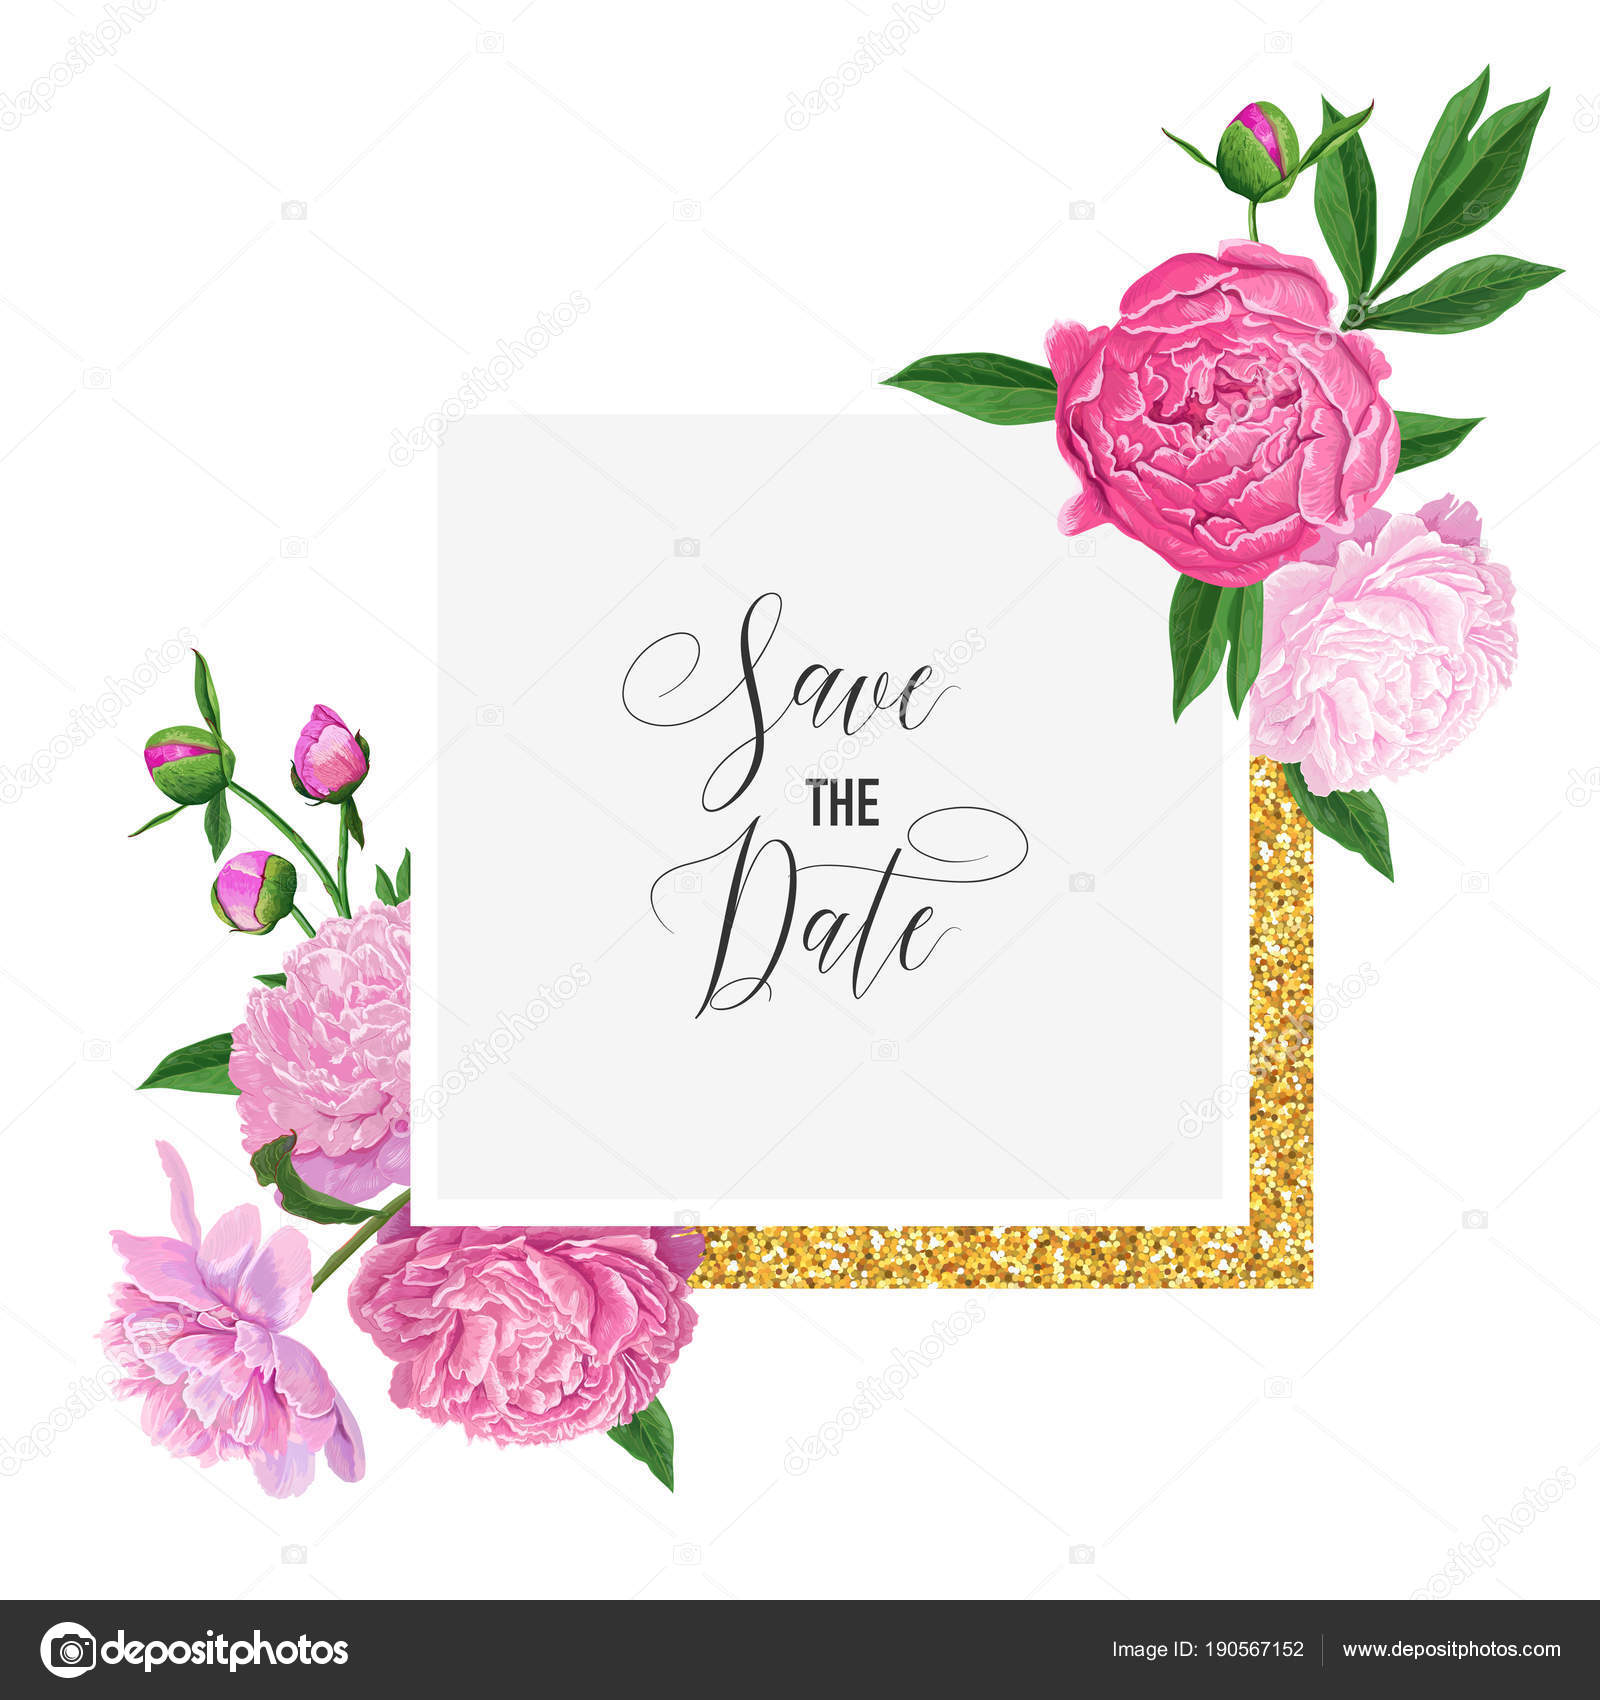 Floral wedding invitation template save the date card with blooming floral wedding invitation template save the date card with blooming pink peony flowers and golden frame romantic botanical design for ceremony decoration junglespirit Image collections